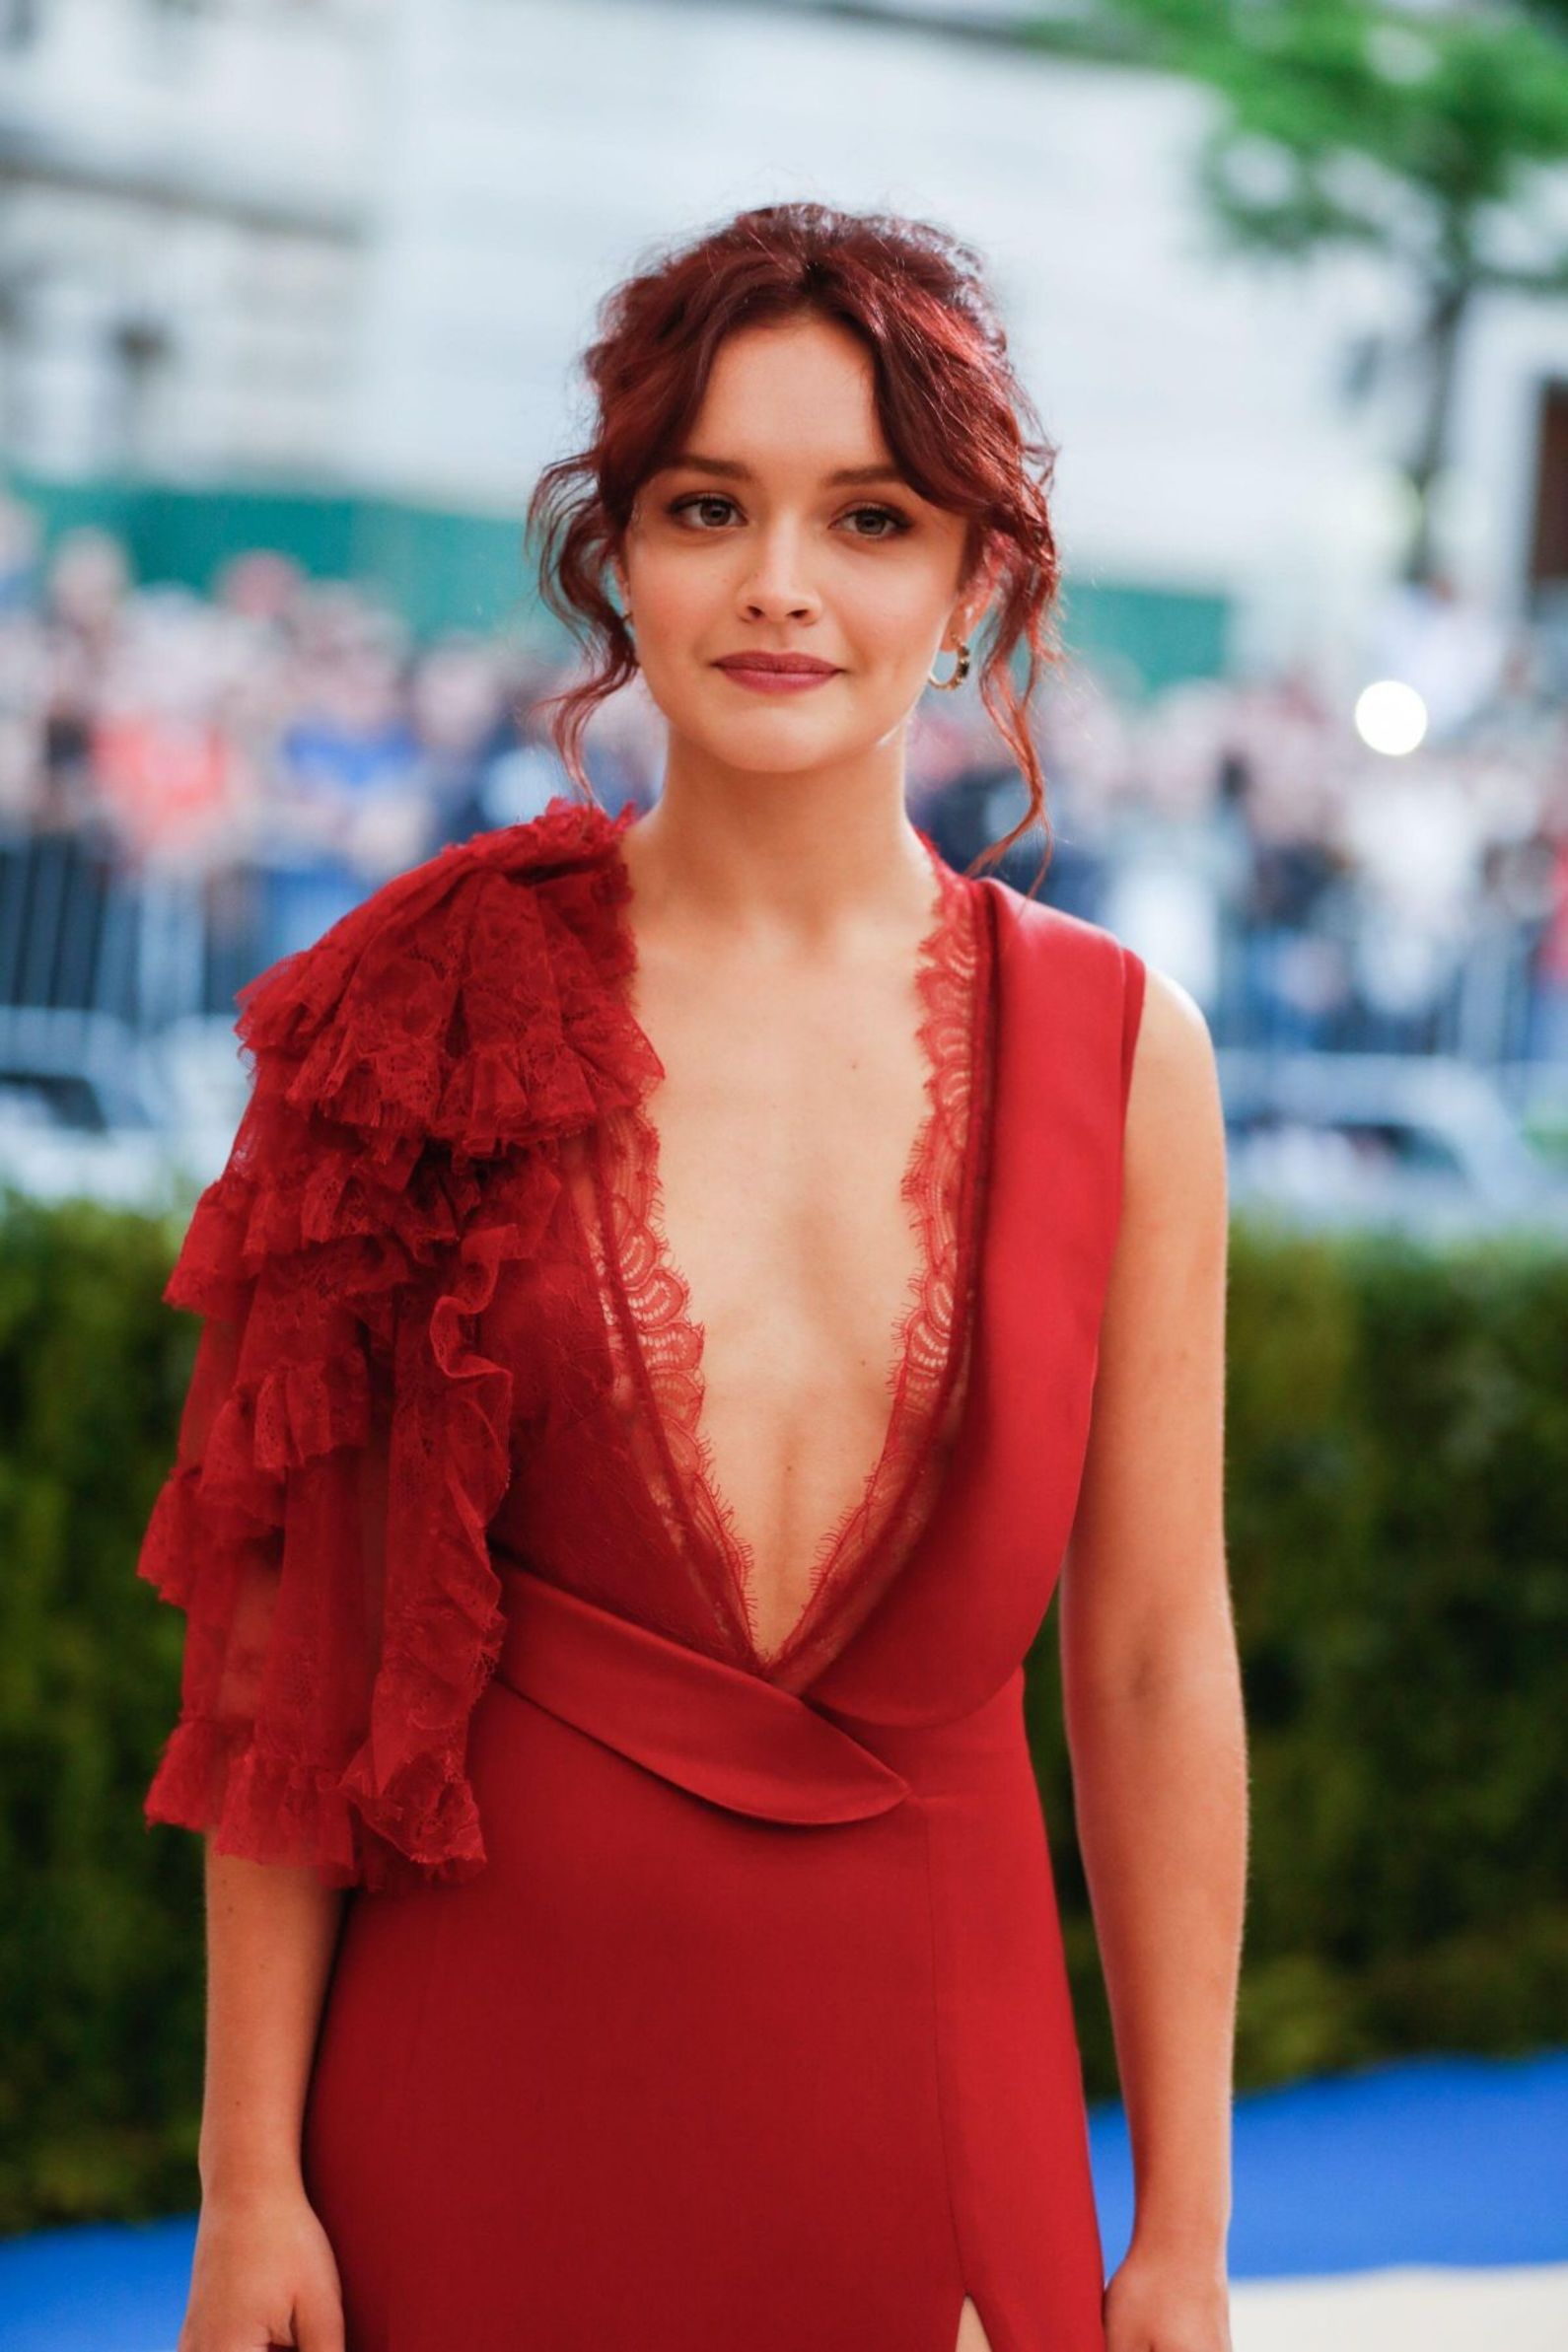 Olivia Cooke nude (24 photos), Feet